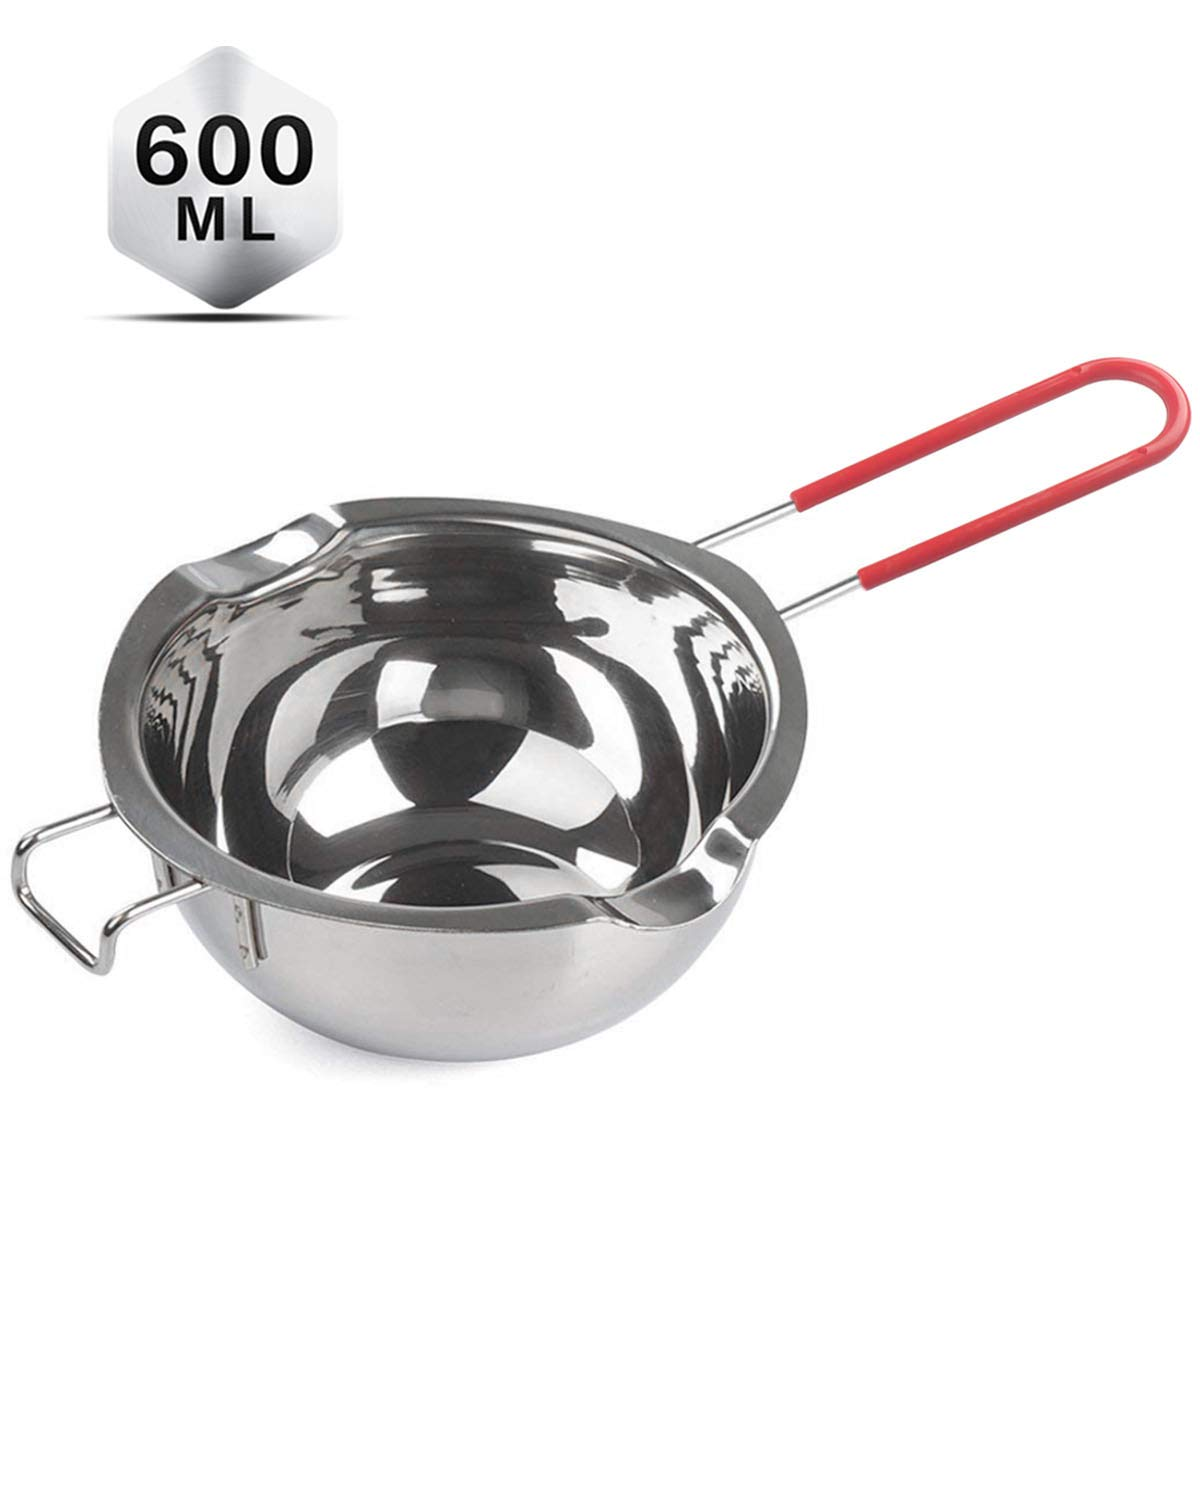 Stainless Steel Double Boiler 600ML, Updated Melting Pot with Heat Resistant Handle for Melting Chocolate, Butter, Candy and Making Custards, Sauces - 18/8 Steel Universal Insert by small homeware